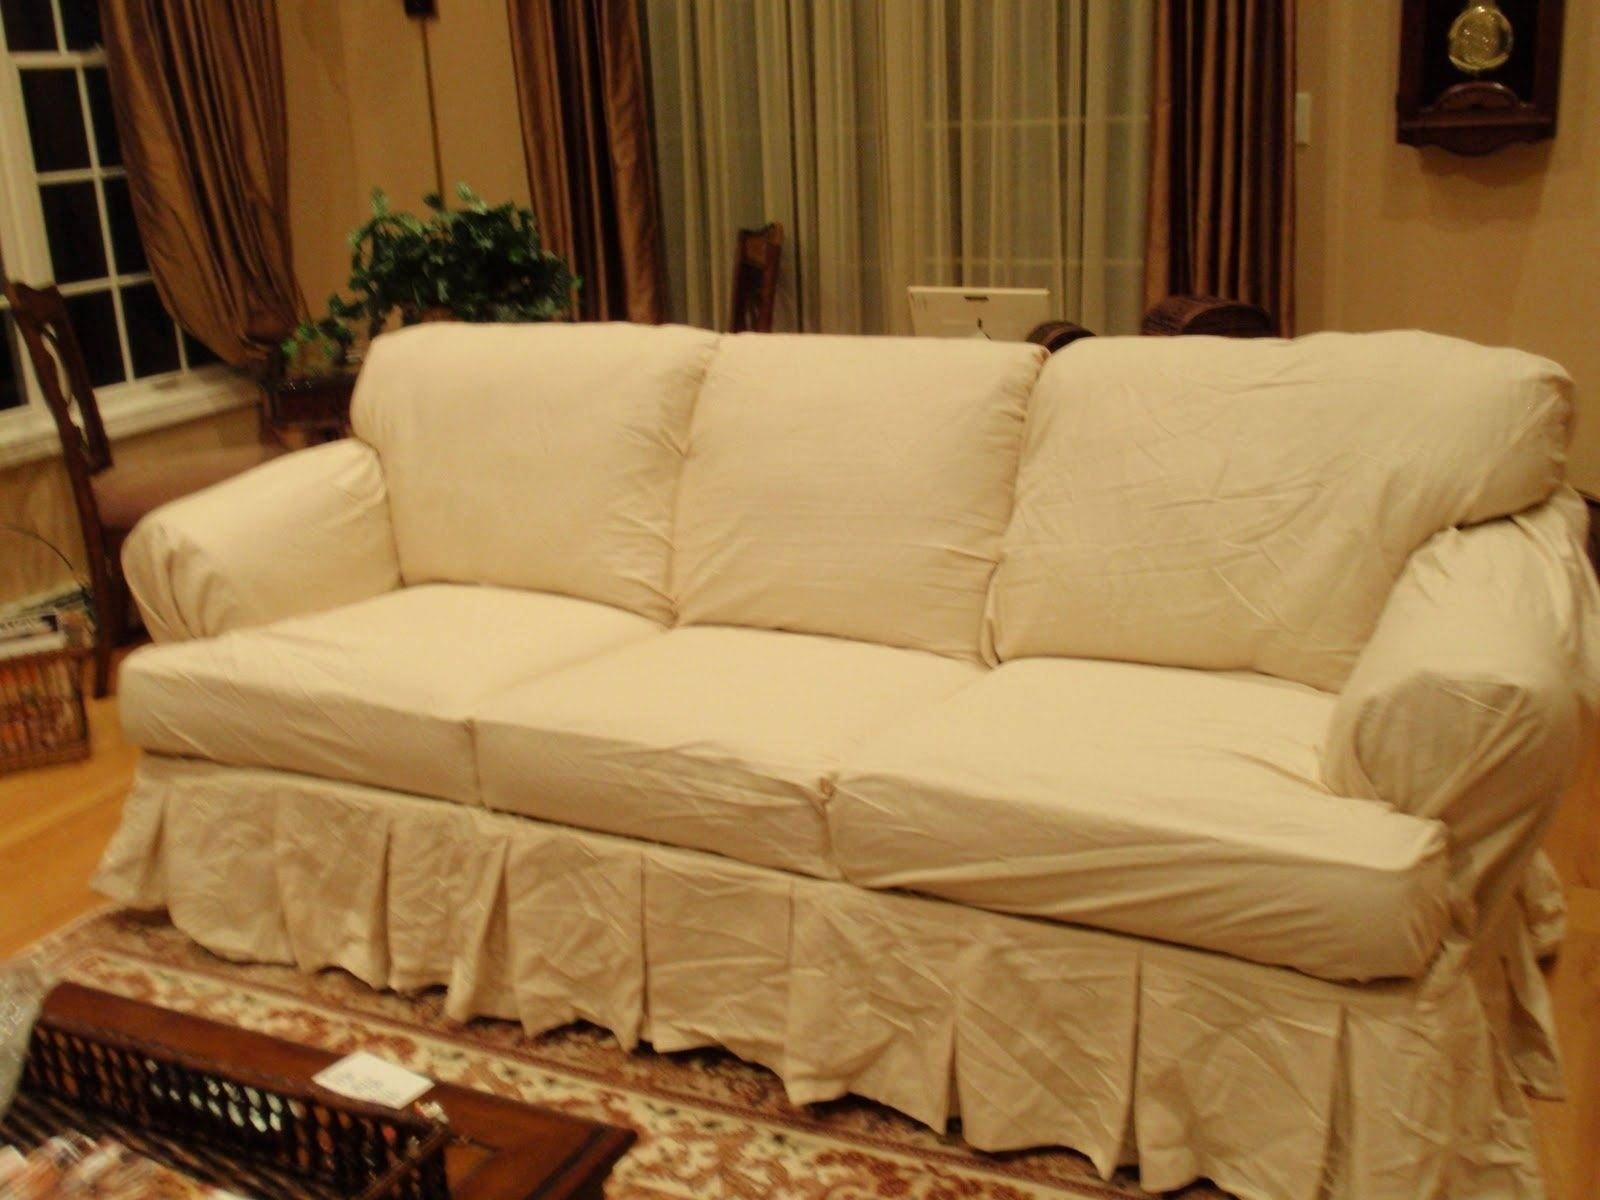 Tips: Smooth And Comfort Slipcovers For Sectional Couches Design for Slipcovers For 3 Cushion Sofas (Image 13 of 15)